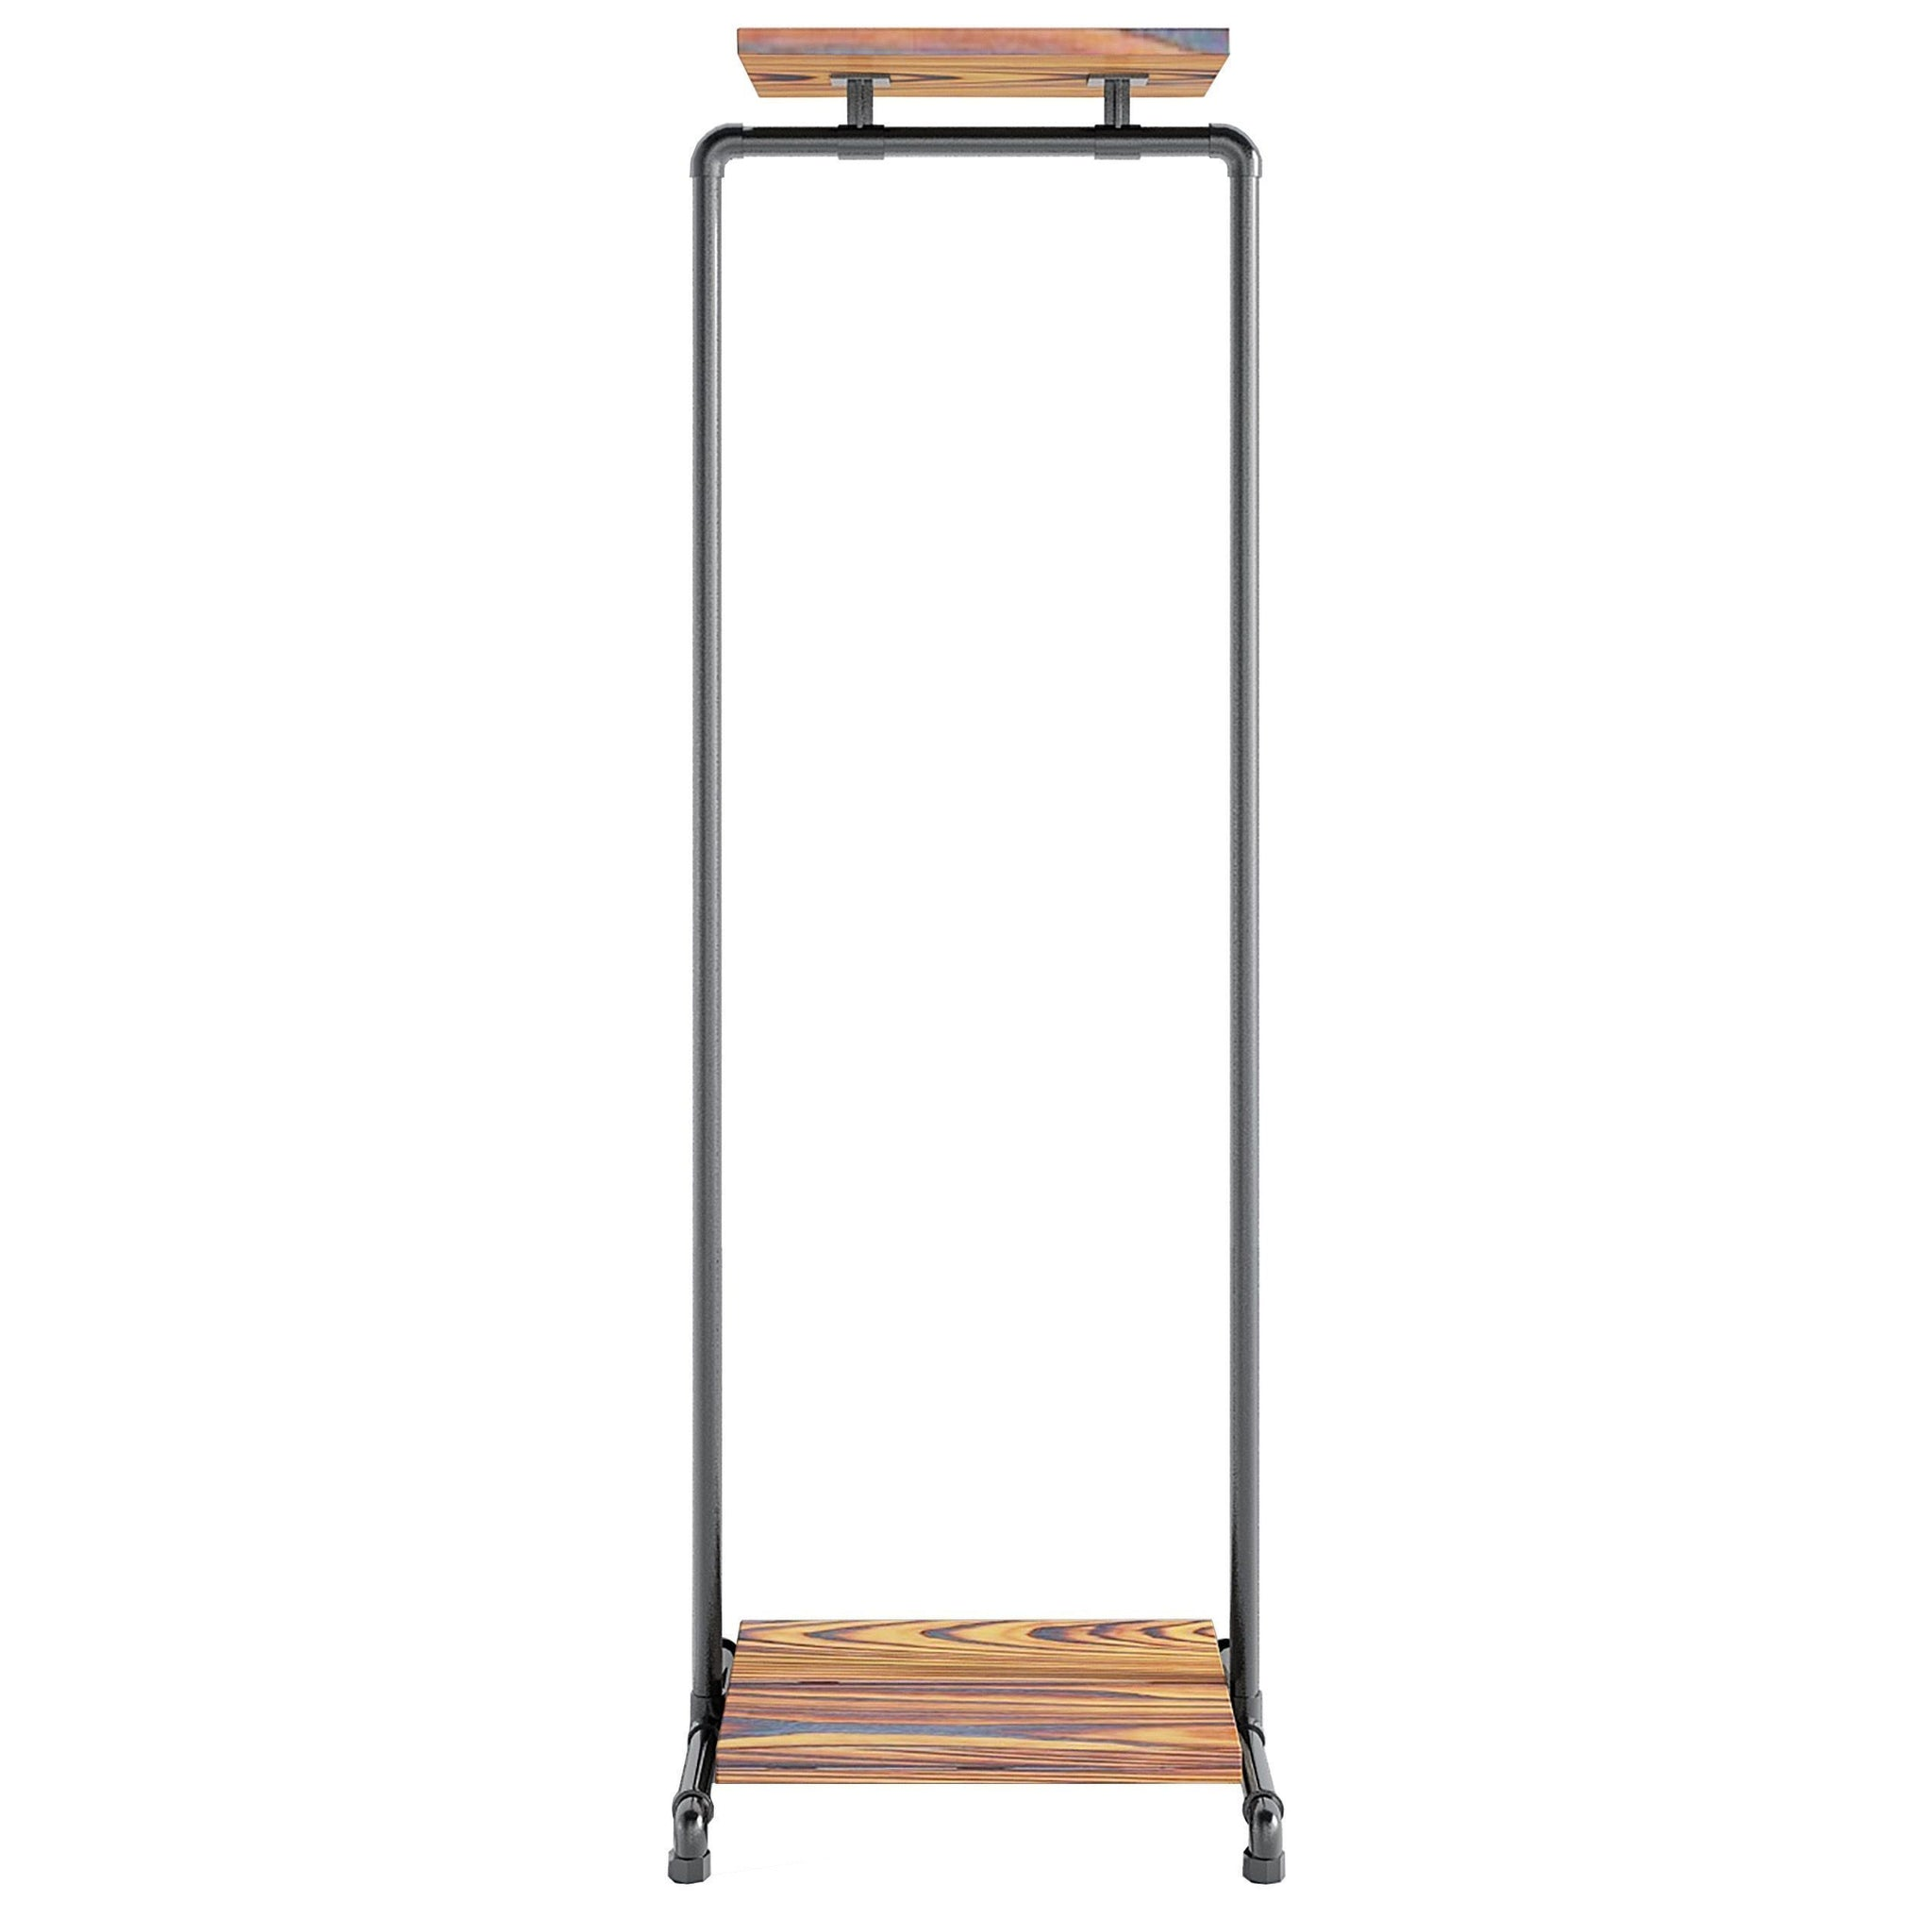 Ziito Clothes Rail A2 / 50 cm / Uden Wood Double Shelf Tøjstativ